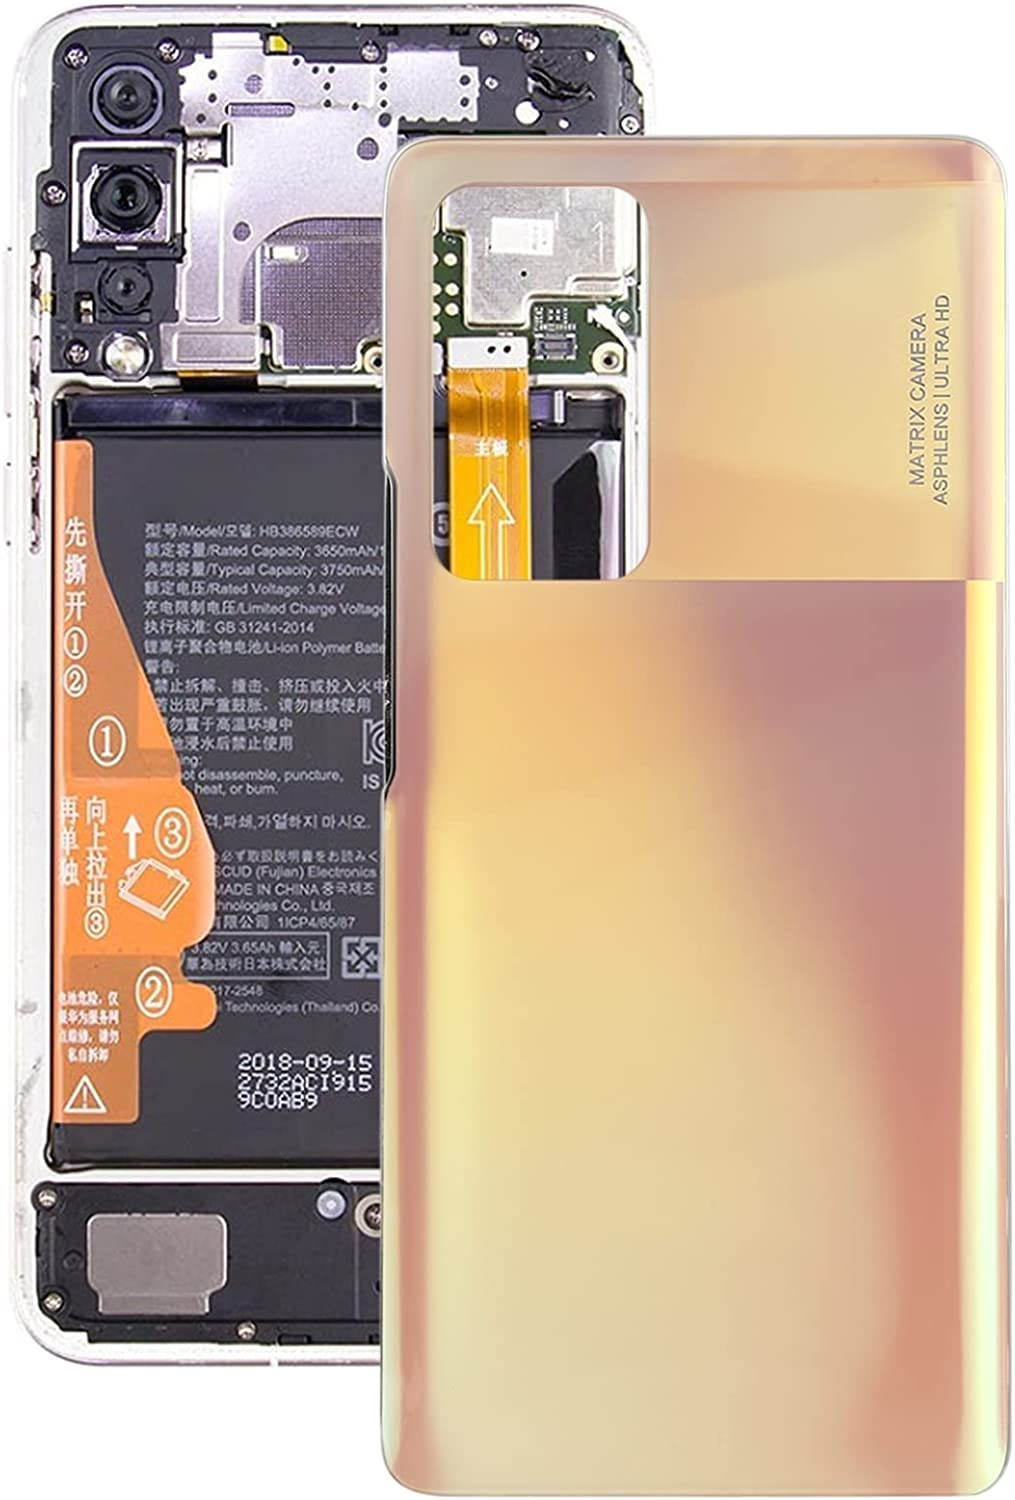 Lihuoxiu Mobile Phone Replacement Back Year-end gift Battery Bac Cover It is very popular